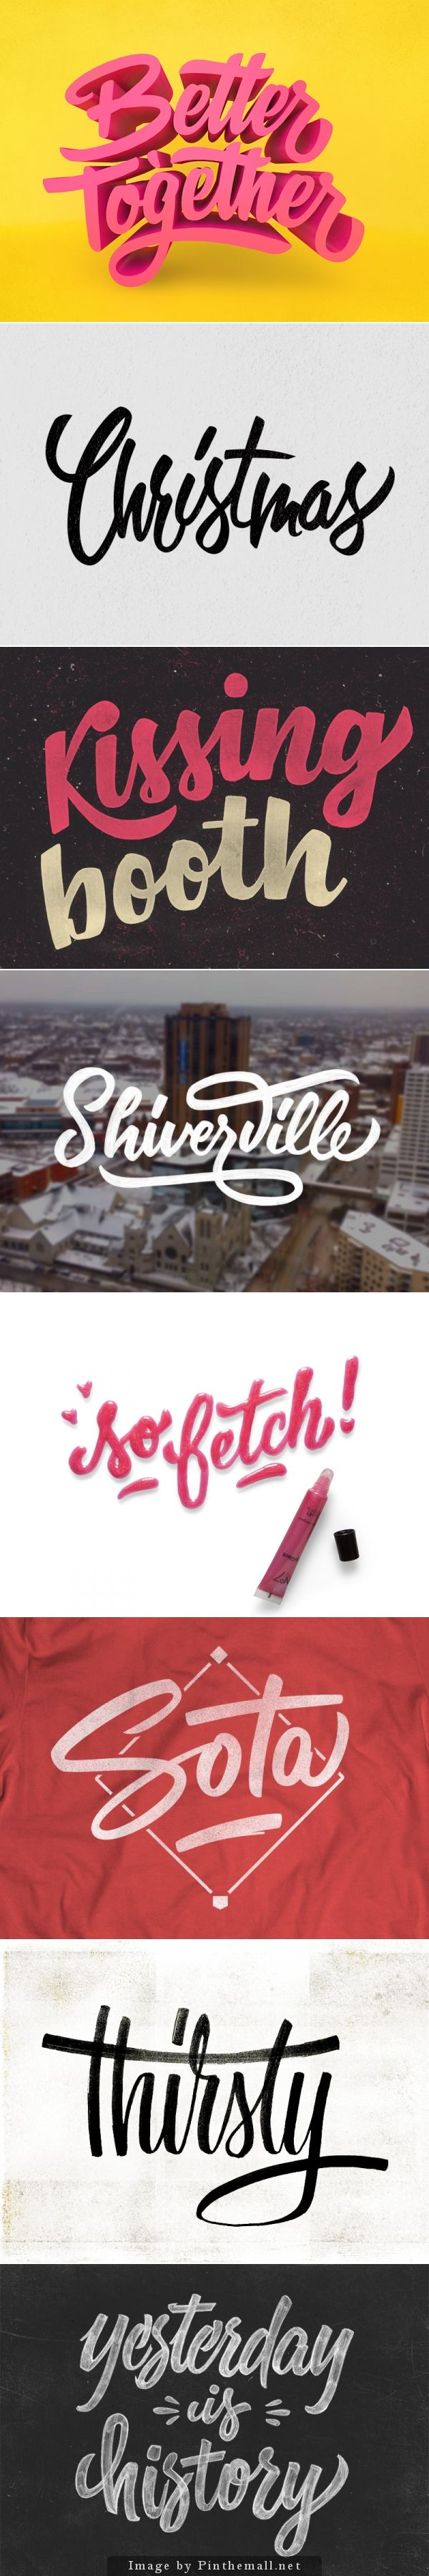 Mike Greenwell, Letterer - created via http://pinthemall.net